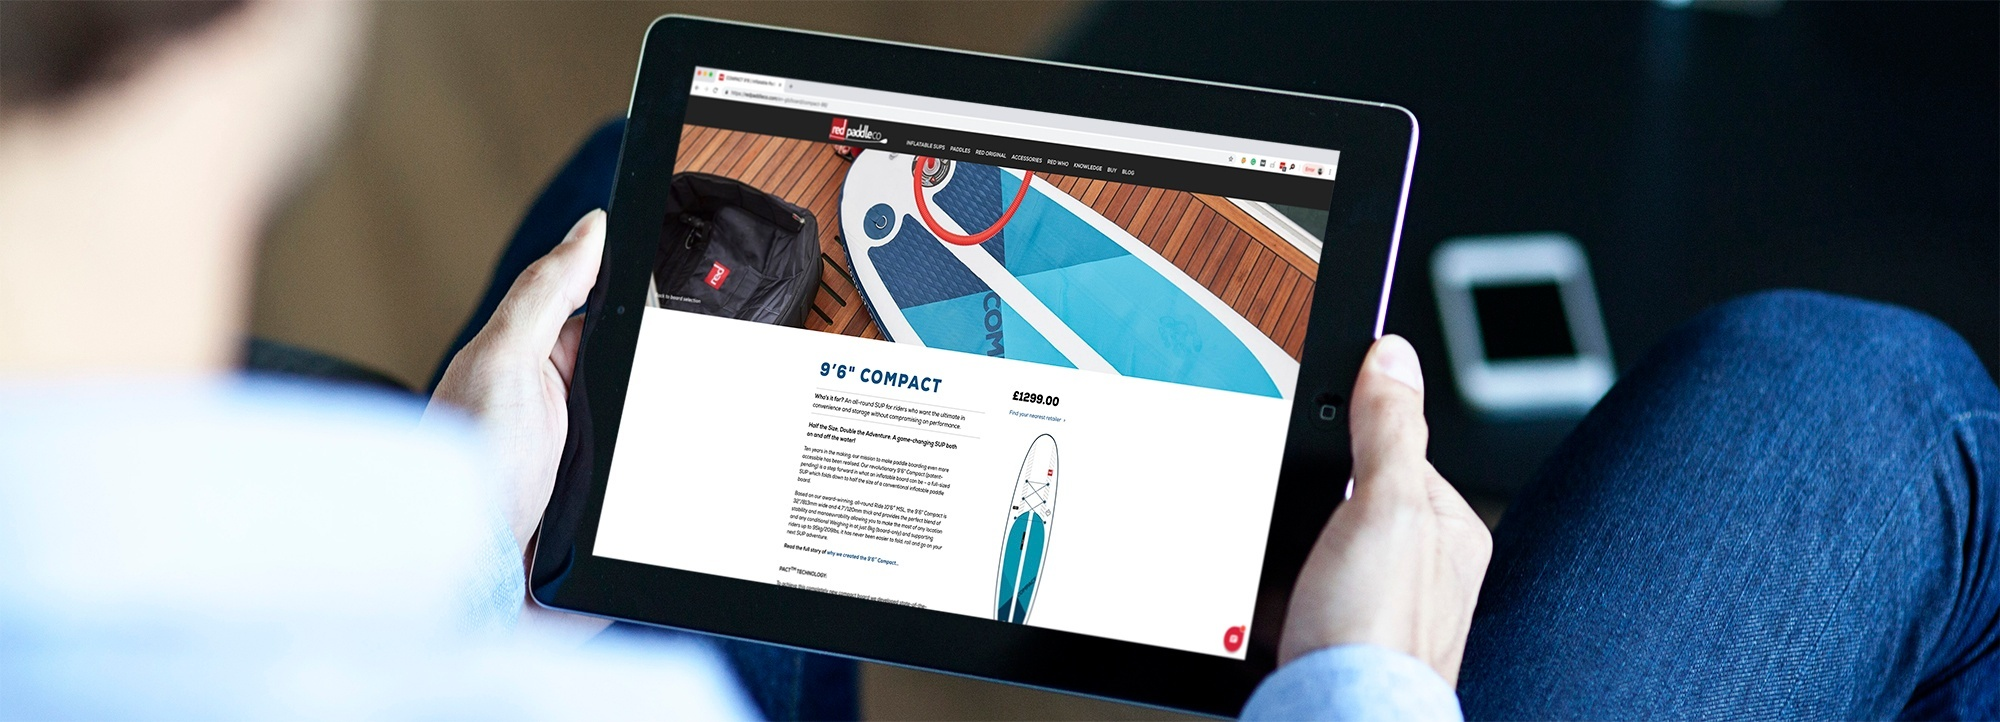 Red Paddle Co ecommerce site on ipad